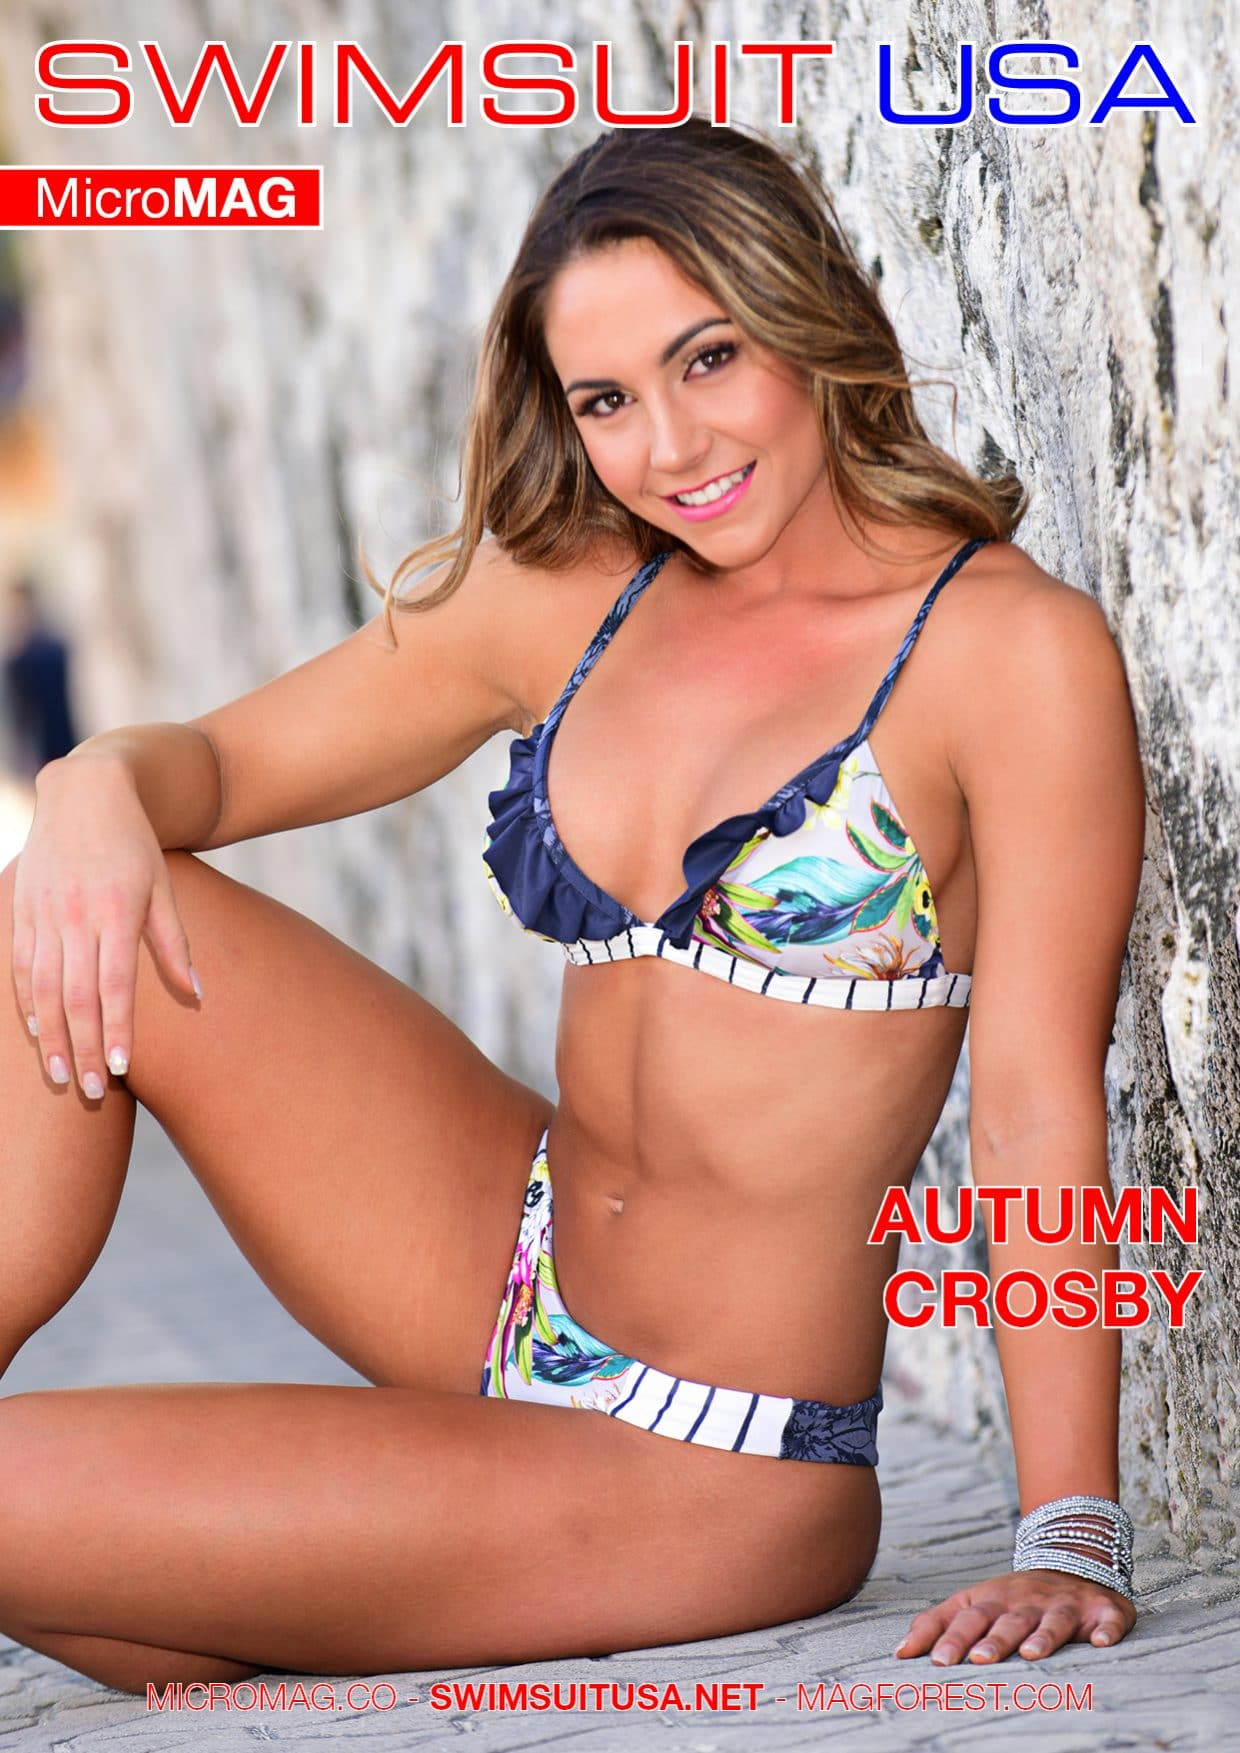 Swimsuit Usa Micromag – Autumn Crosby – Issue 2